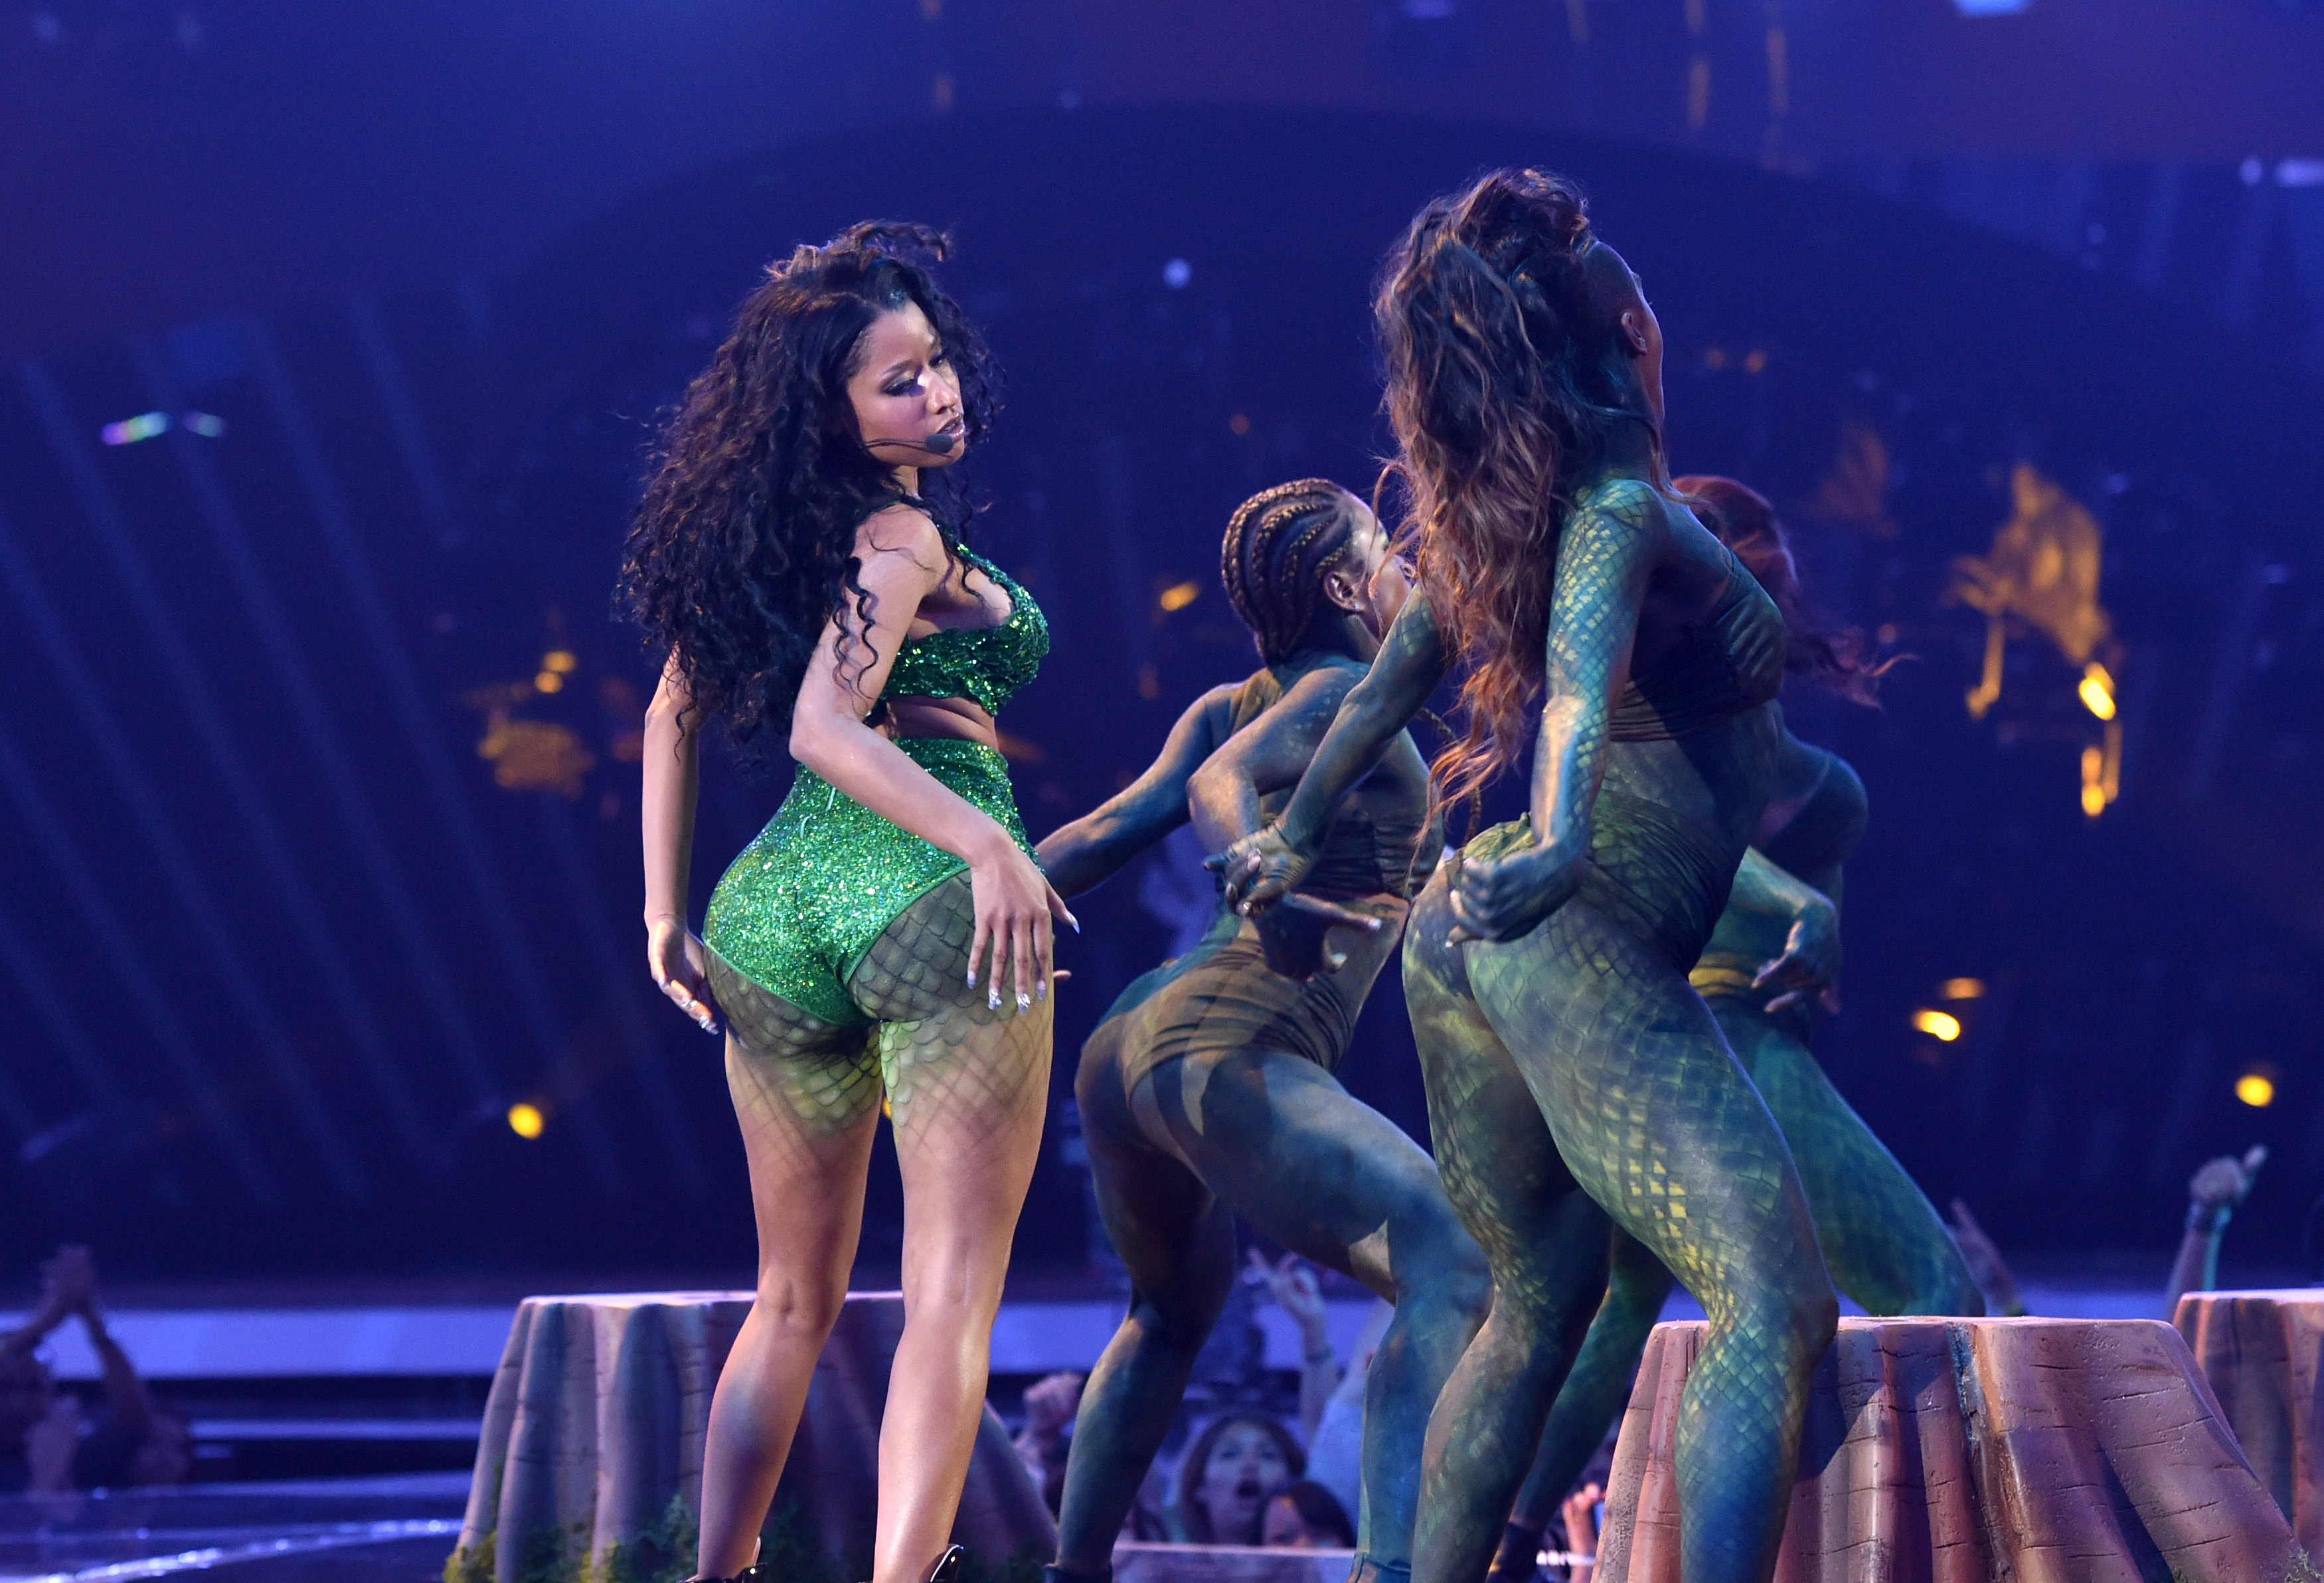 dce6645665a8 Nicki Minaj performs onstage during the 2014 MTV Video Music Awards at The  Forum on August 24